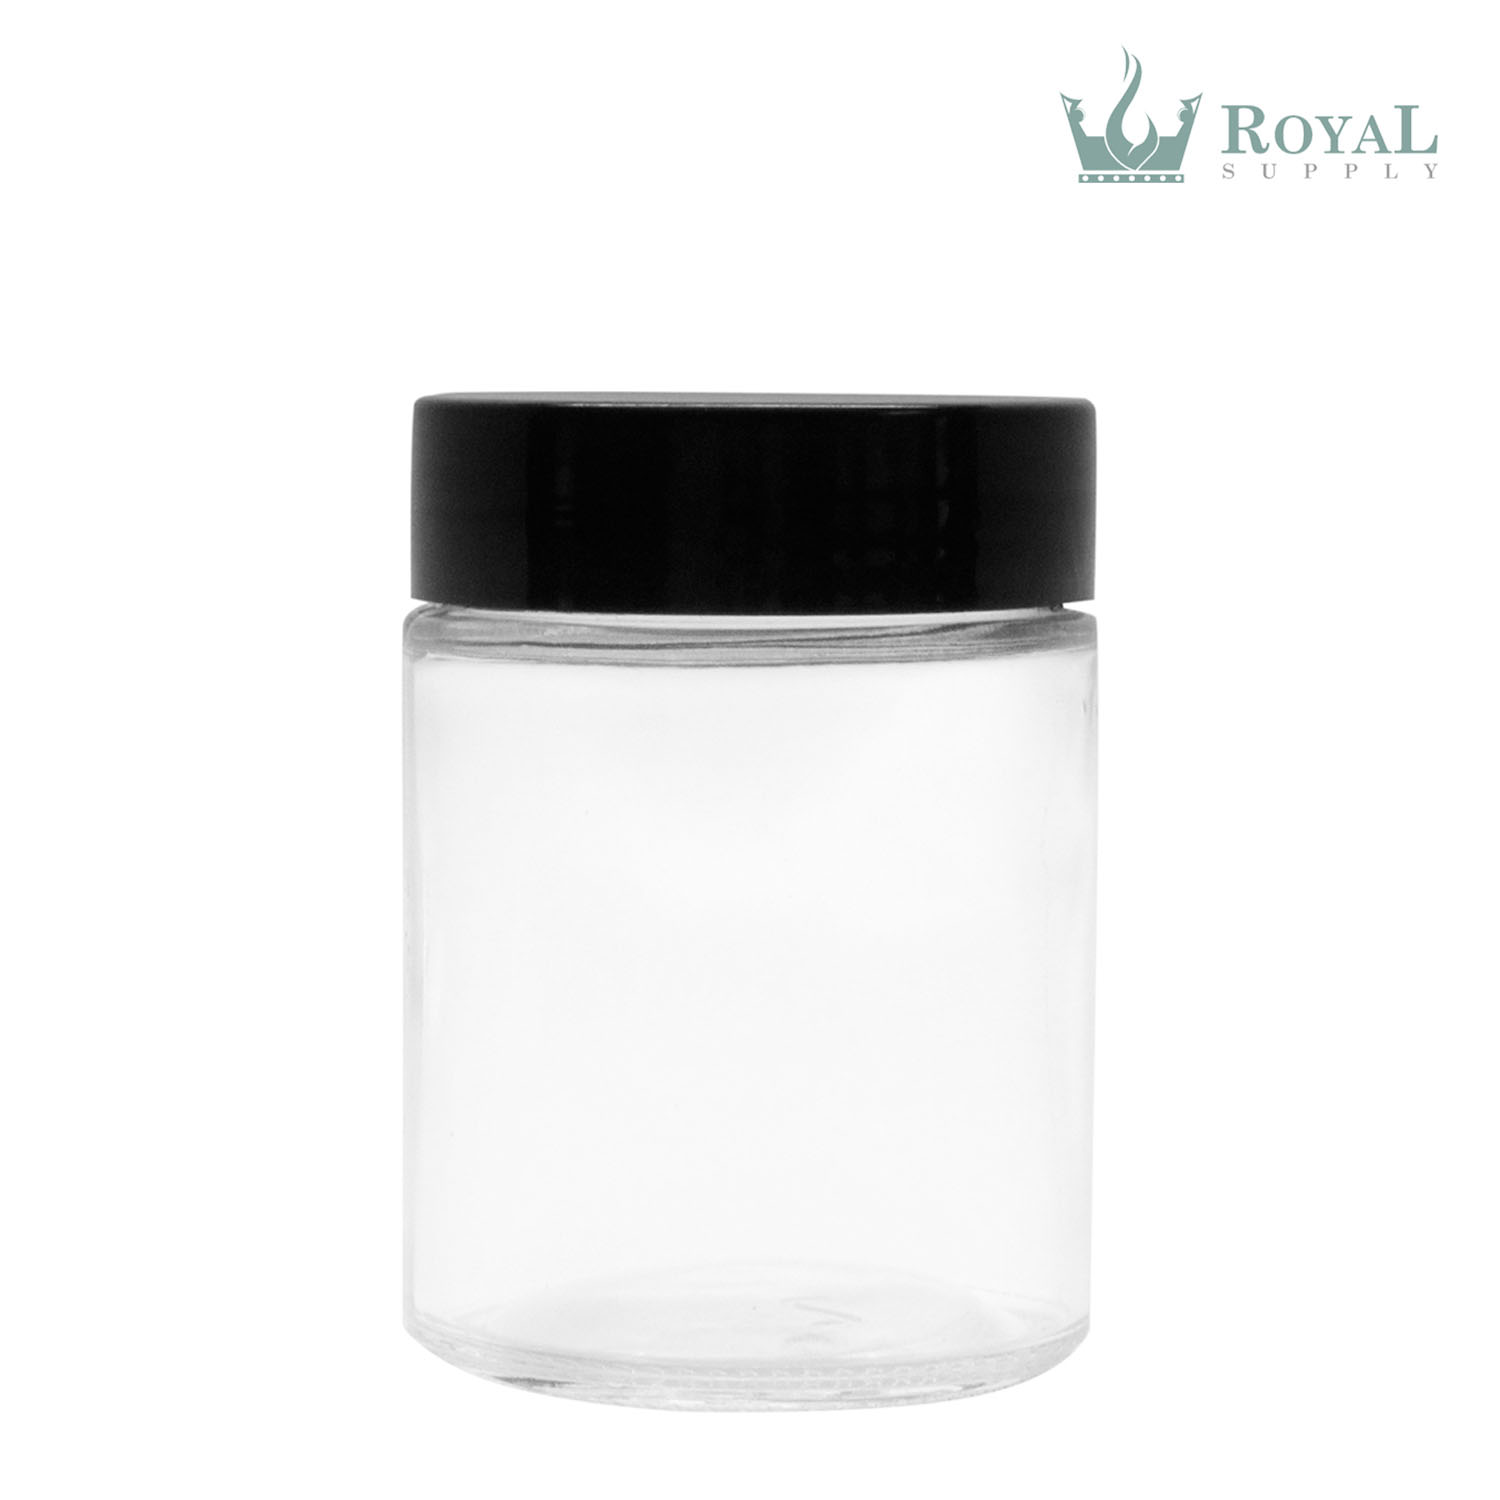 5 oz Glass Jars Containers